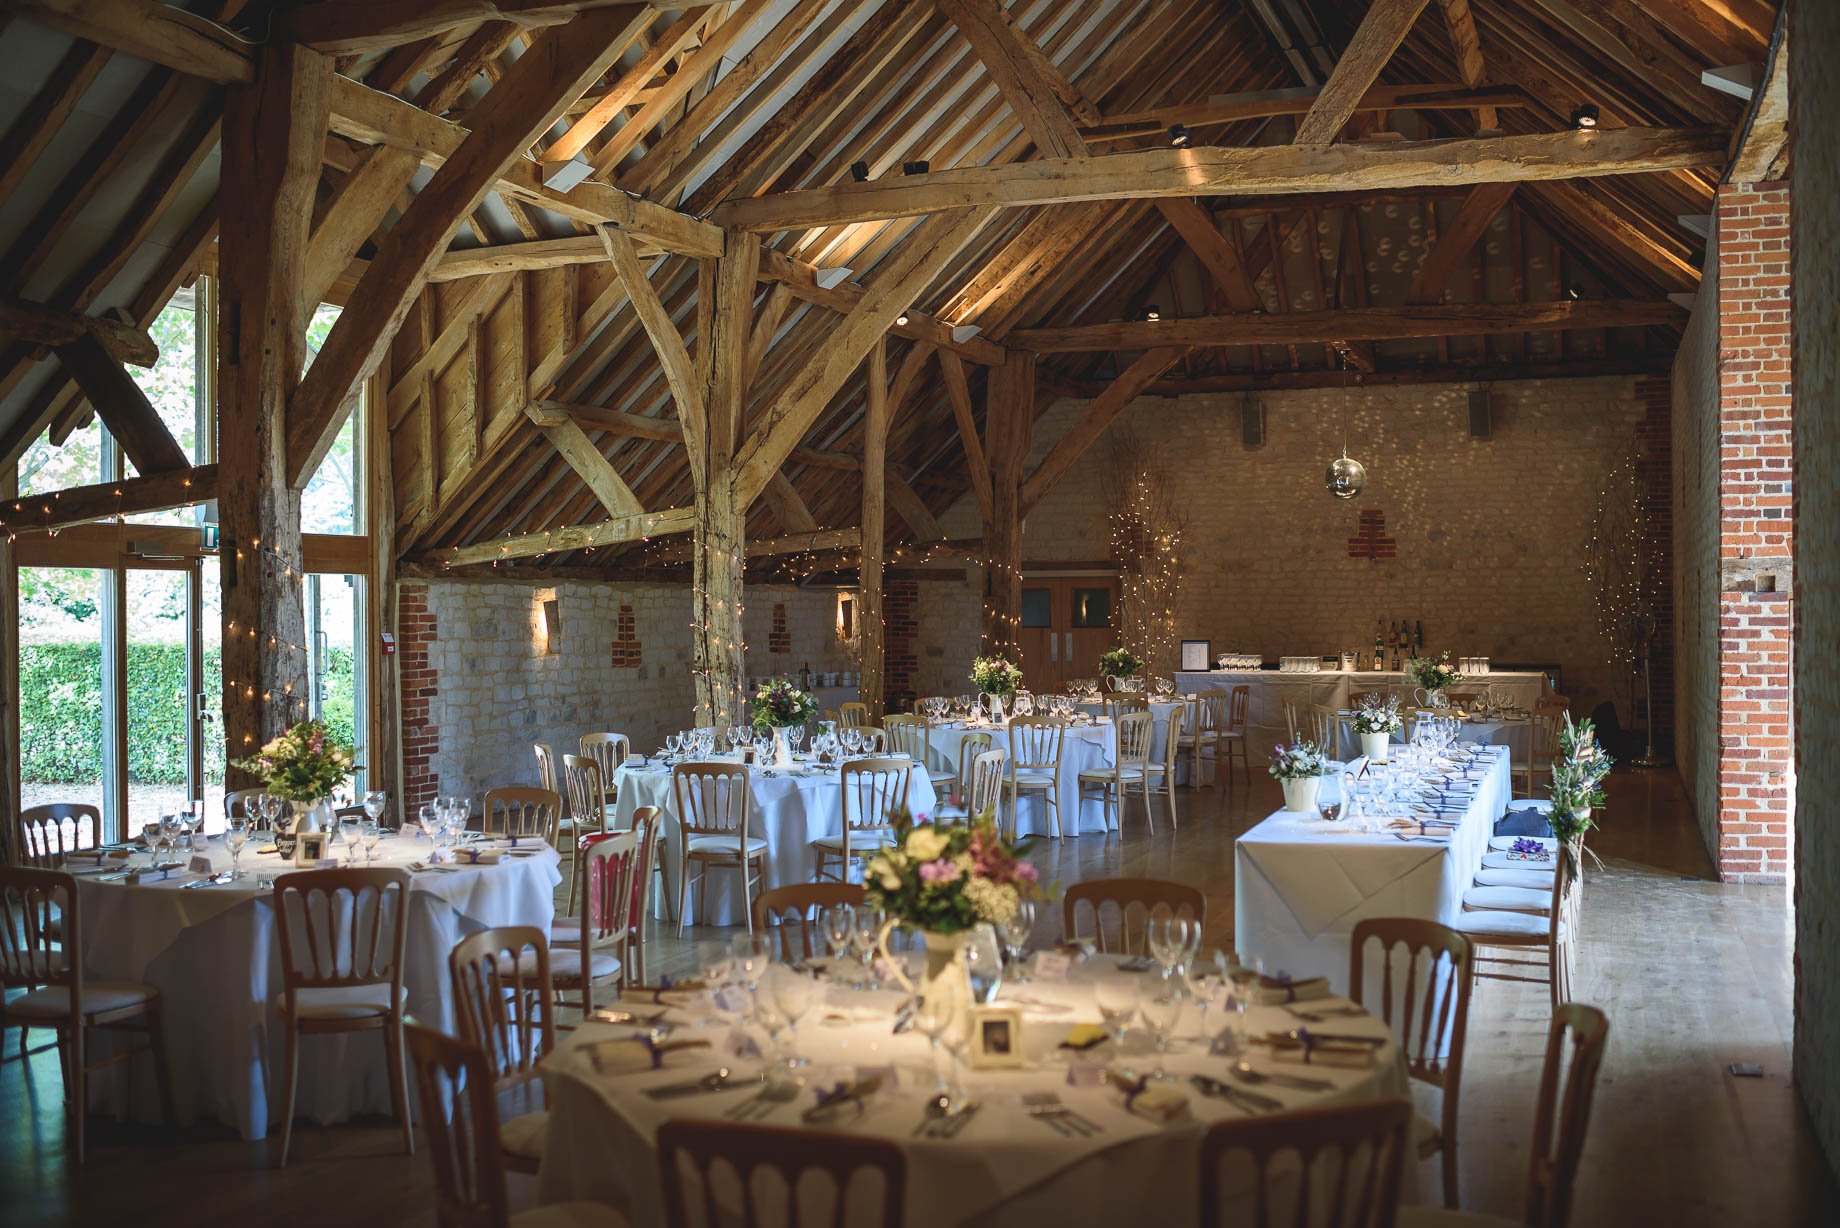 Bury Court Barn wedding photography - Guy Collier - Kirsty and Lewis (108 of 150)